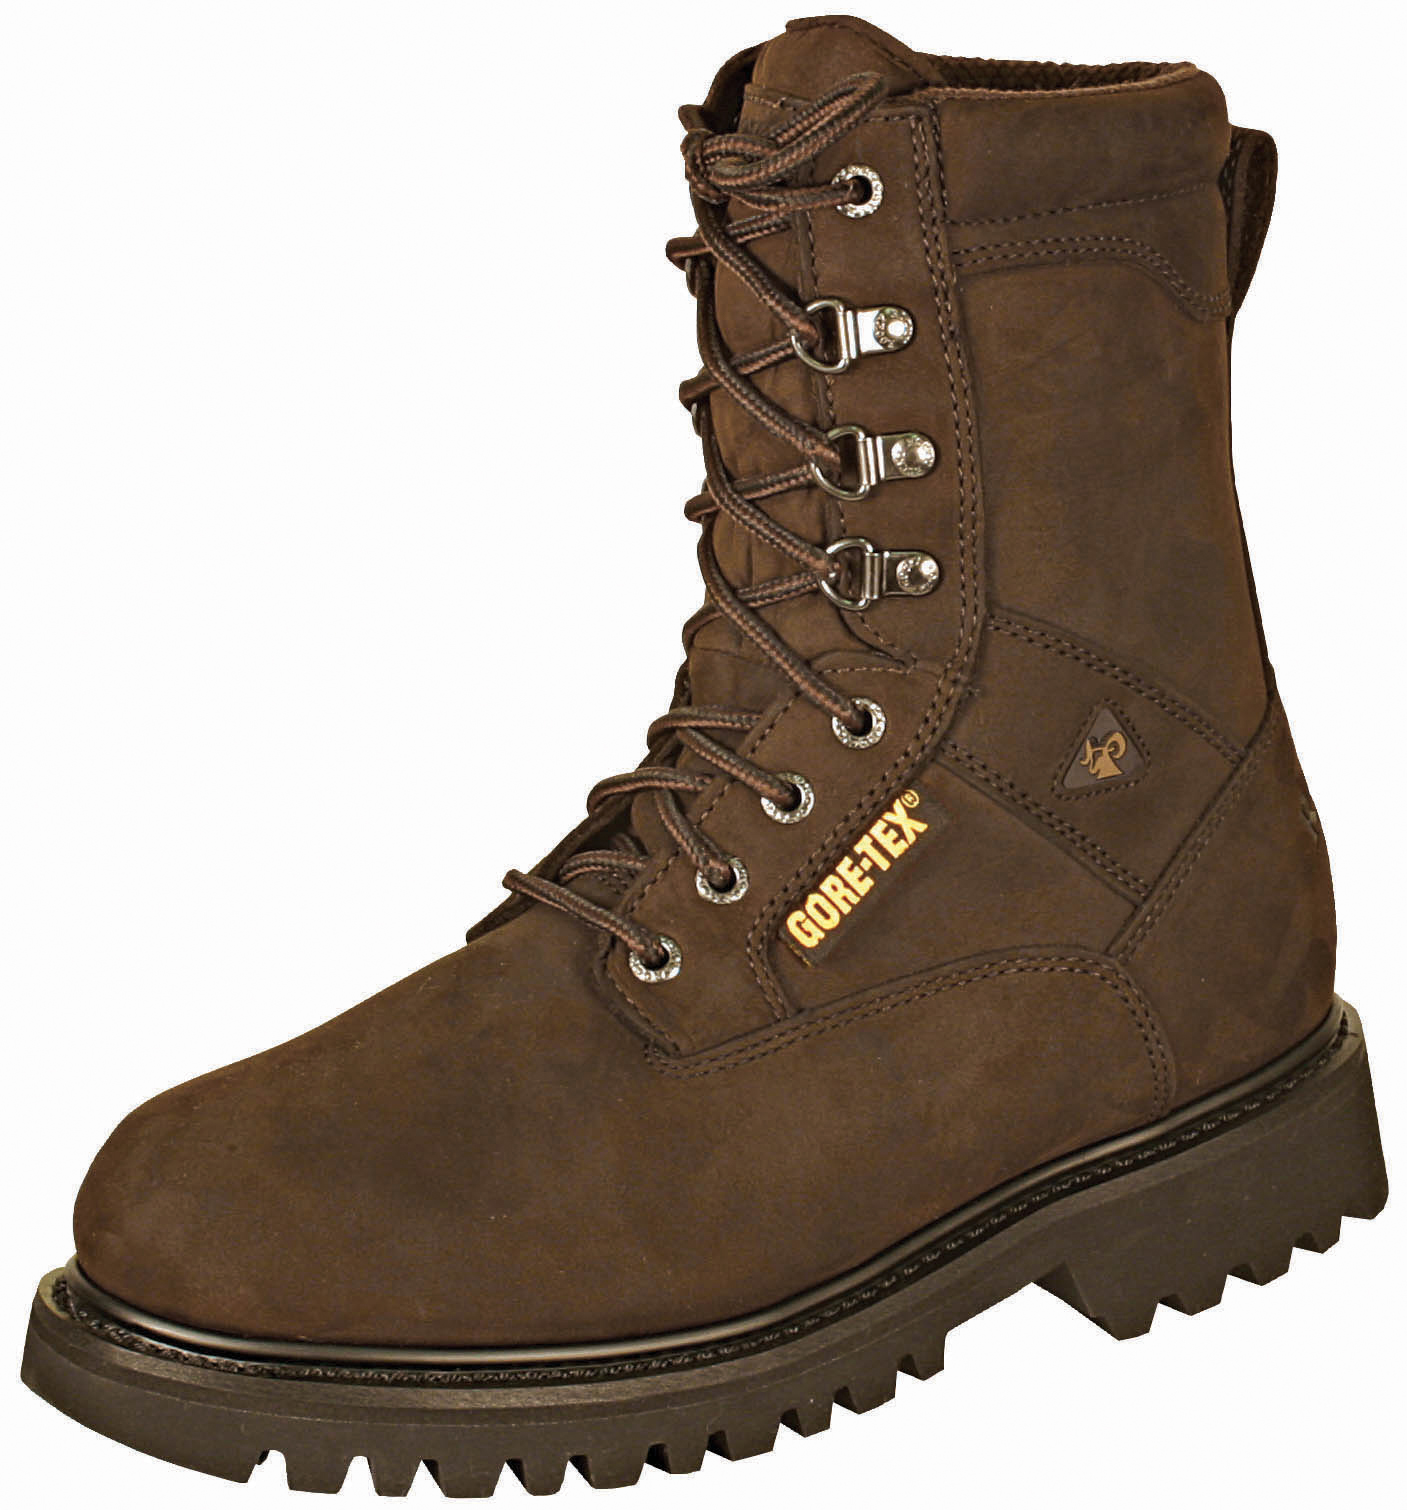 Rocky FQ0006223 Ranger Steel Toe Insulated GORE-TEX Boots | eBay